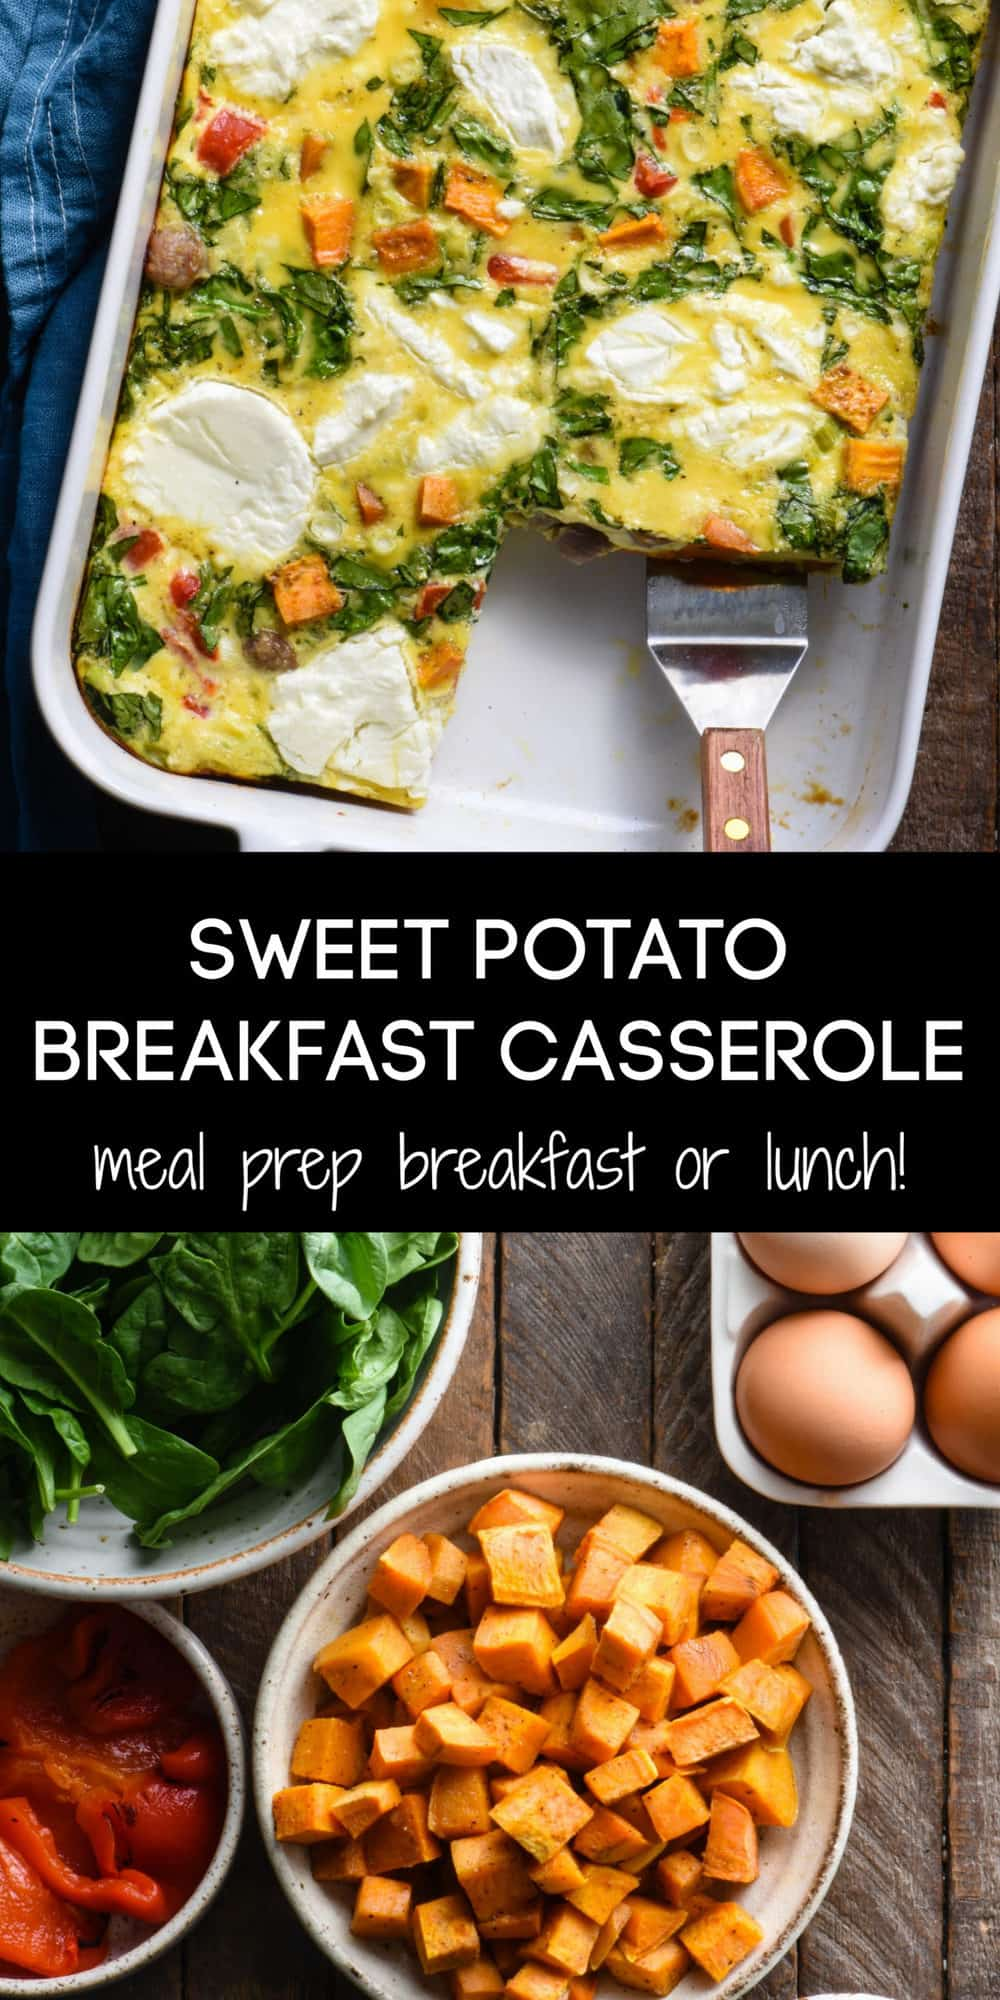 Collage of images of finished breakfast casserole, and prepped ingredients, with overlay: SWEET POTATO BREAKFAST CASSEROLE meal prep breakfast or lunch!